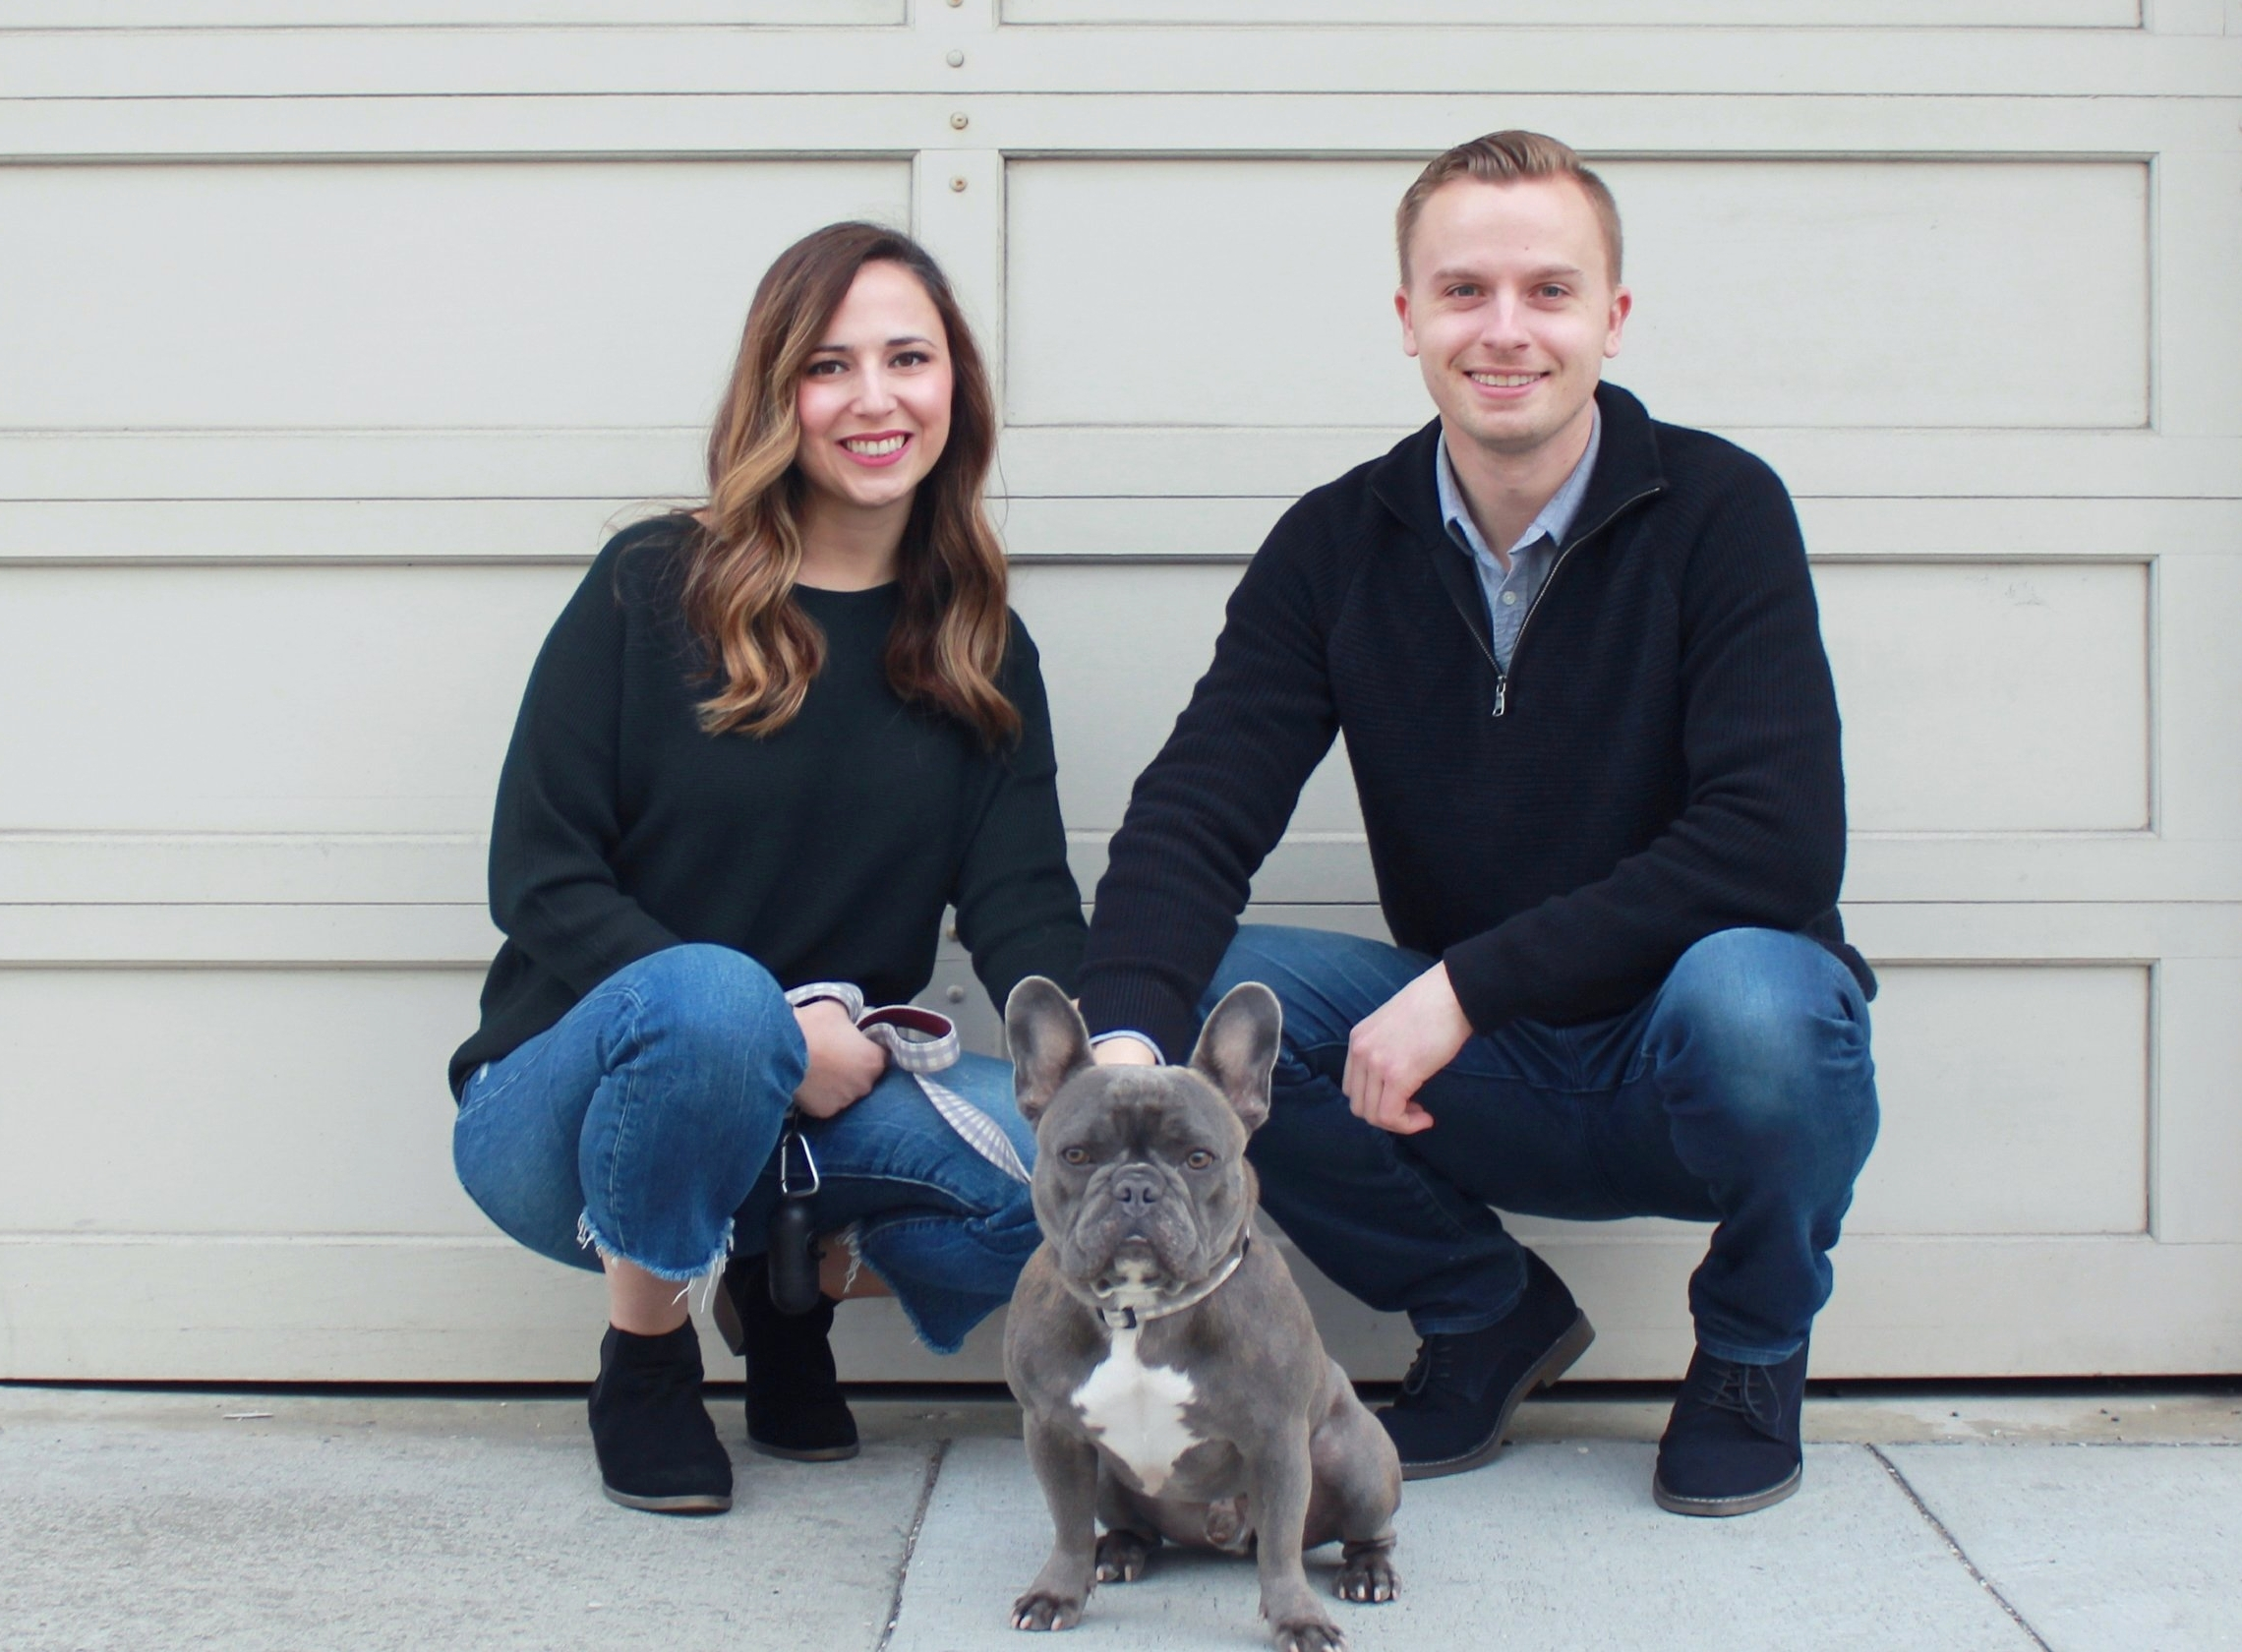 Jasmine Daniel and Justin Yonan of Neptune & Co. with their dog, Neptune